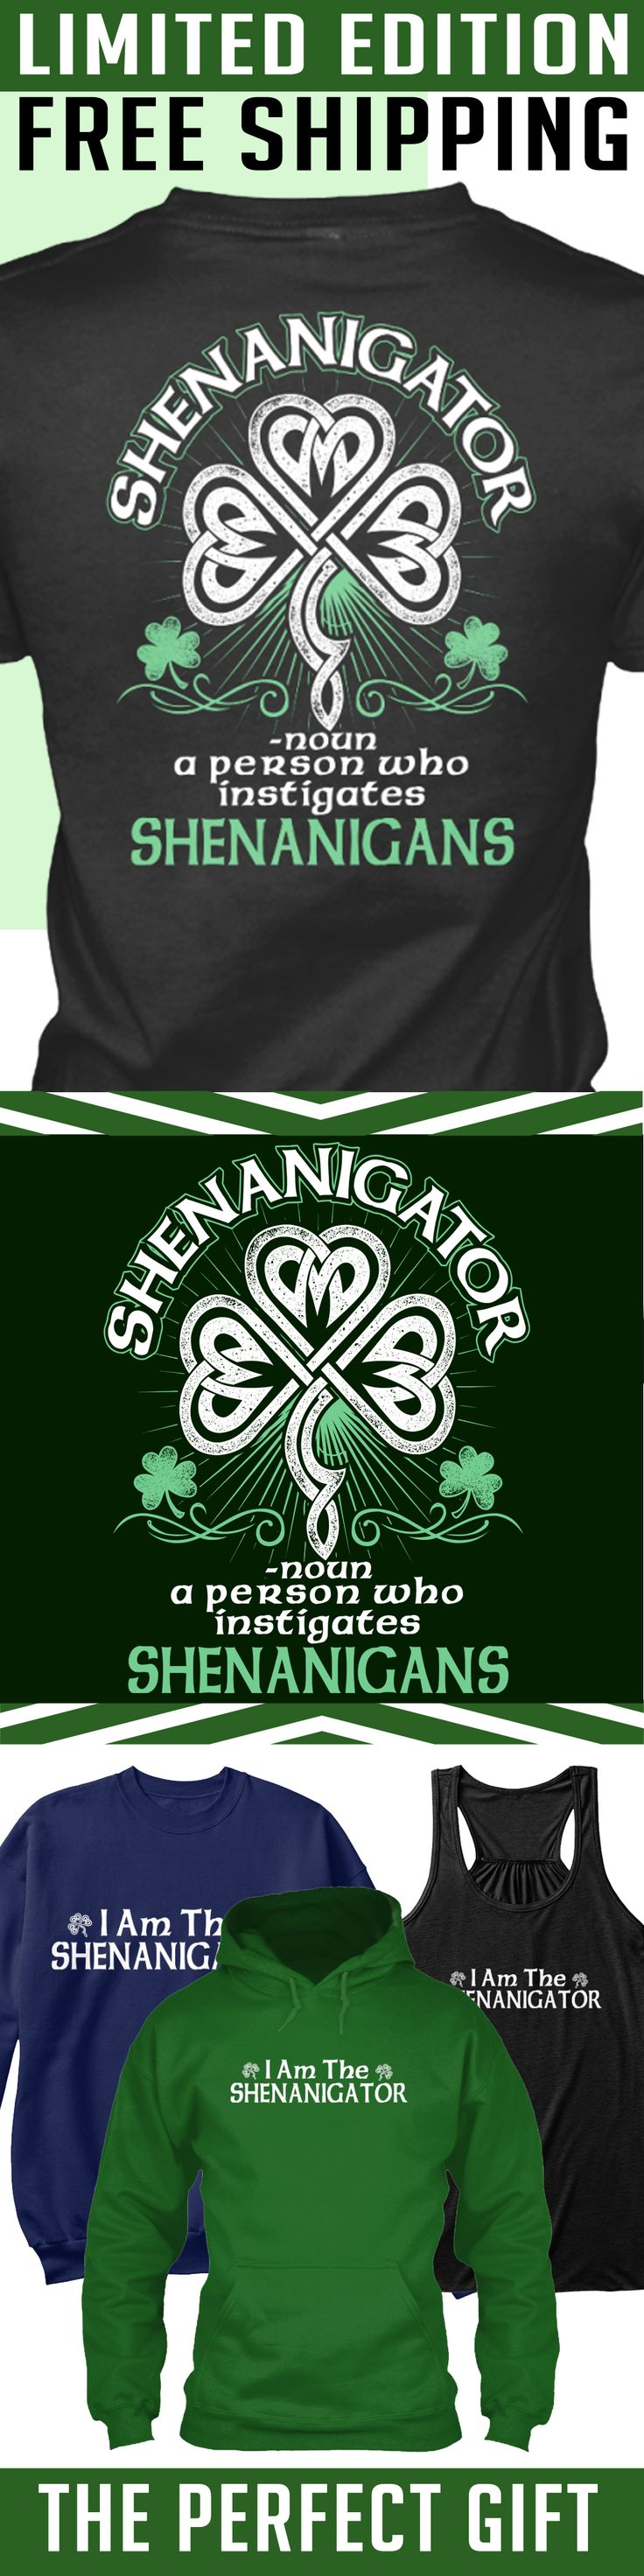 Irish Limited Edition - Limited Edition. Only 2 days left for free shipping, get it now!